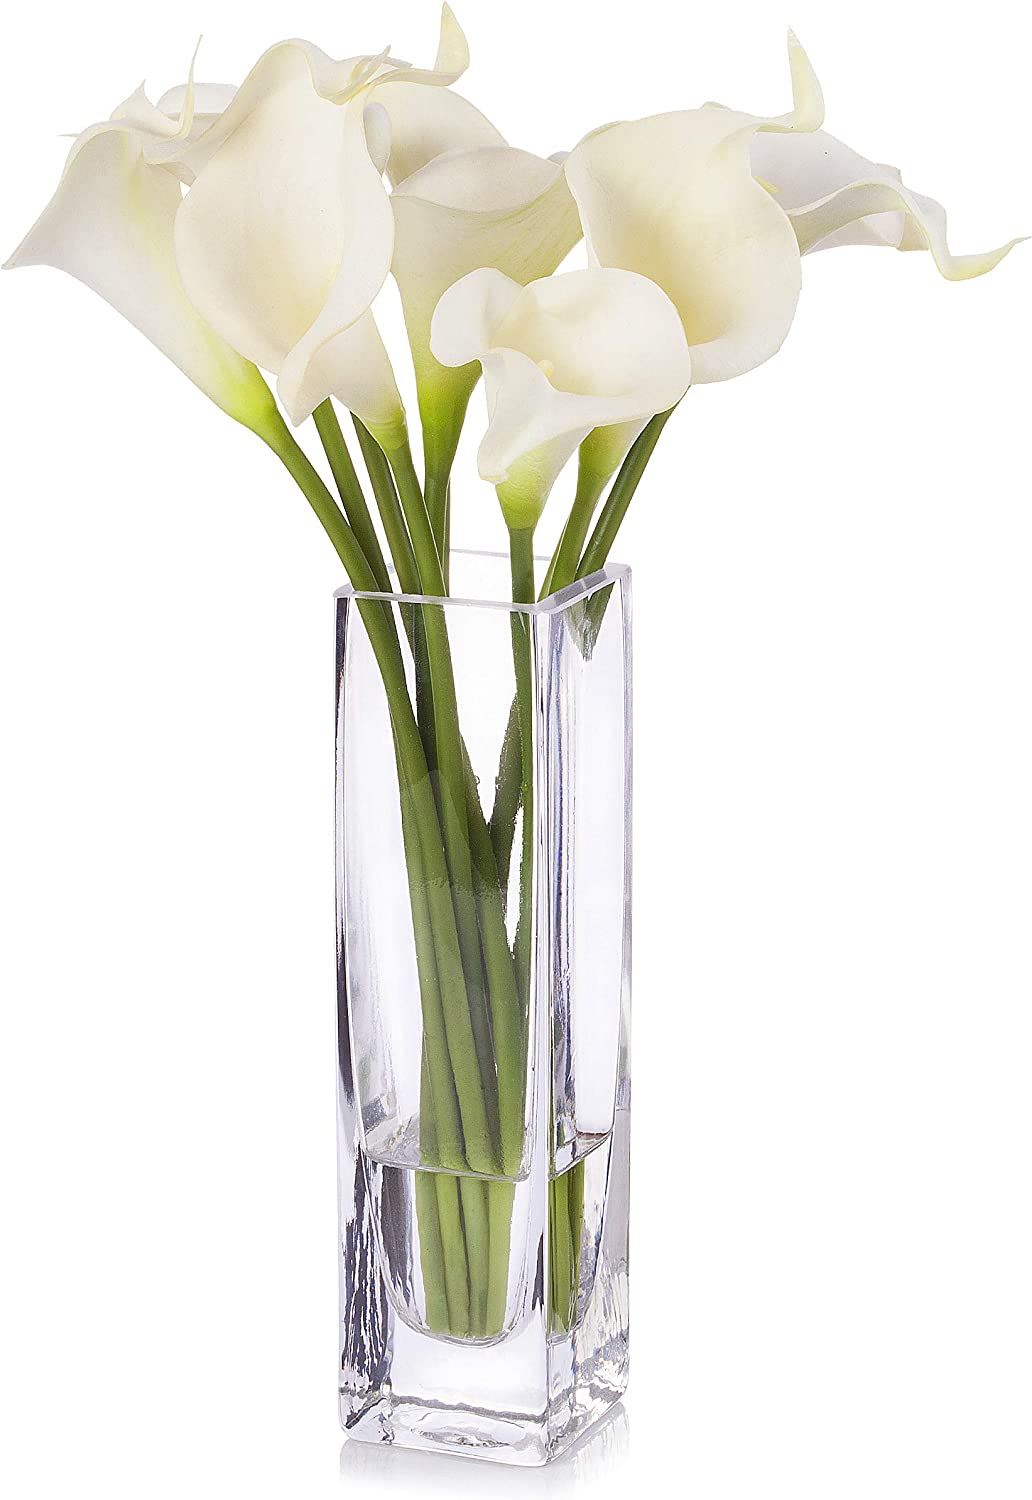 Enova Home Artificial Cream Real Touch Calla Lily Flower Arrangement in Clear Glass Vase with Faux Water for Home Wedding Decoration